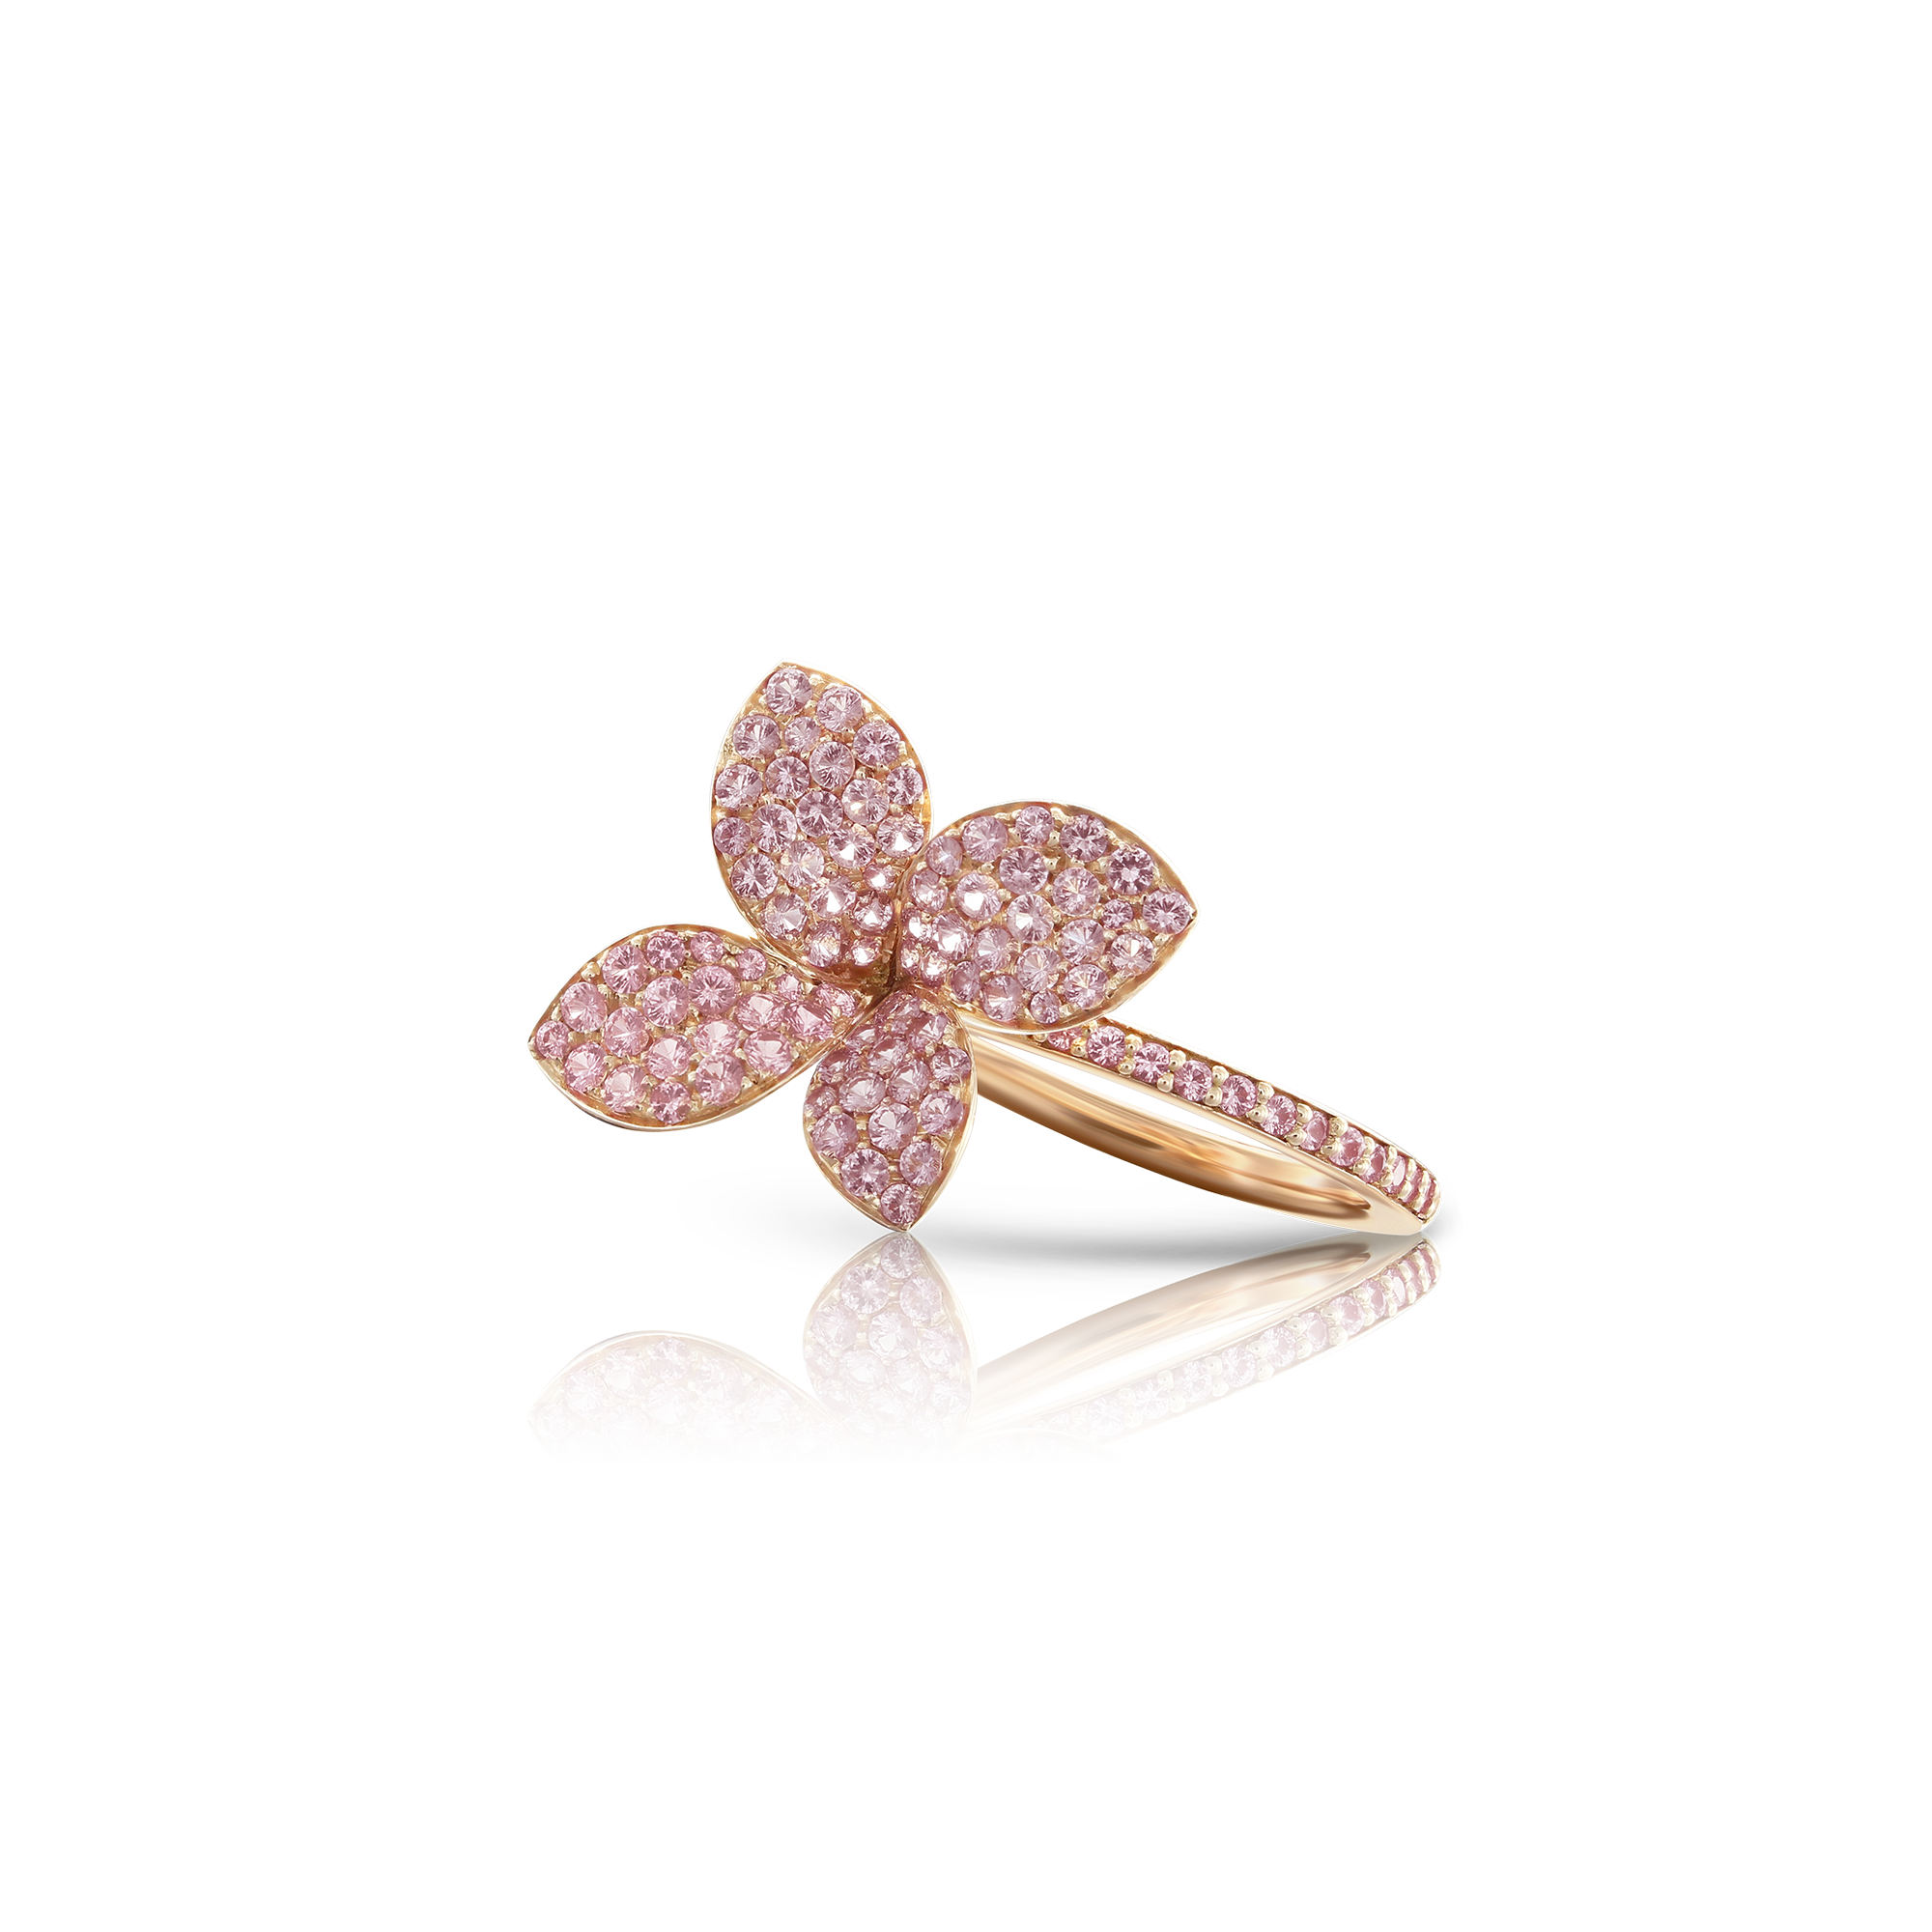 NEW 18k Rose Gold Petit Garden Ring with Pink Sapphires